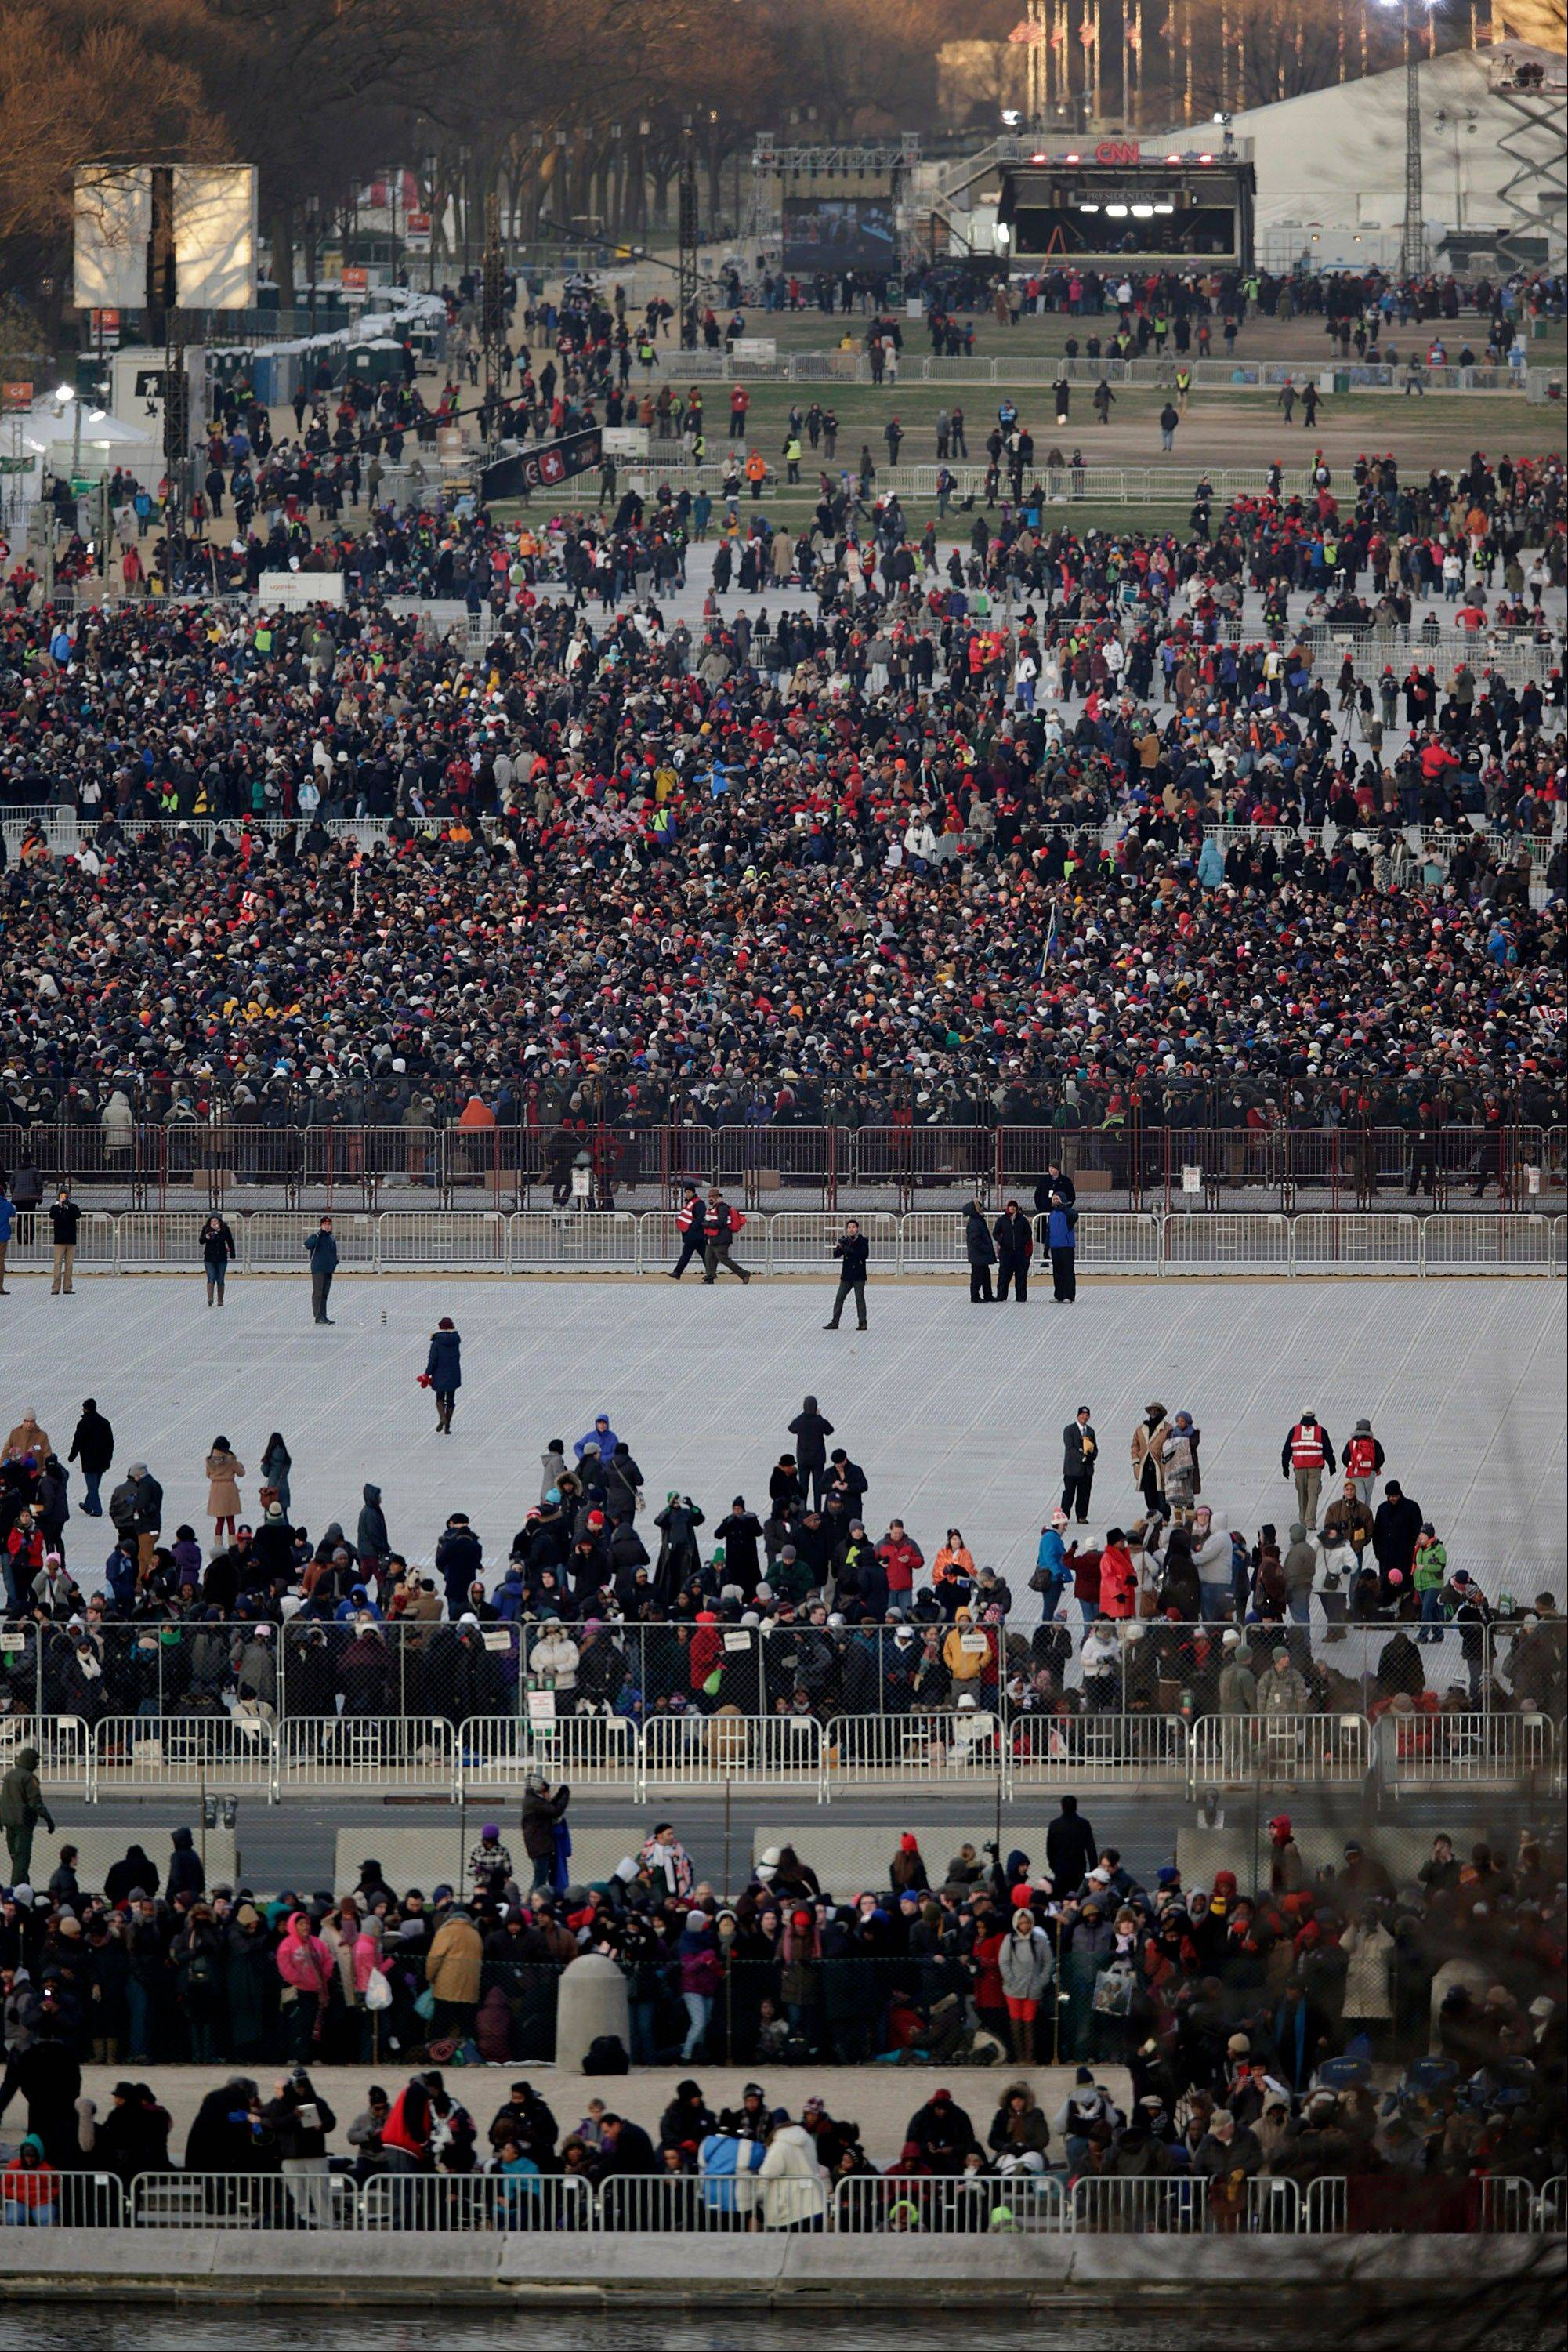 People gather on the National Mall during the U.S. presidential inauguration in Washington, D.C., U.S., on Monday, Jan. 21, 2013.